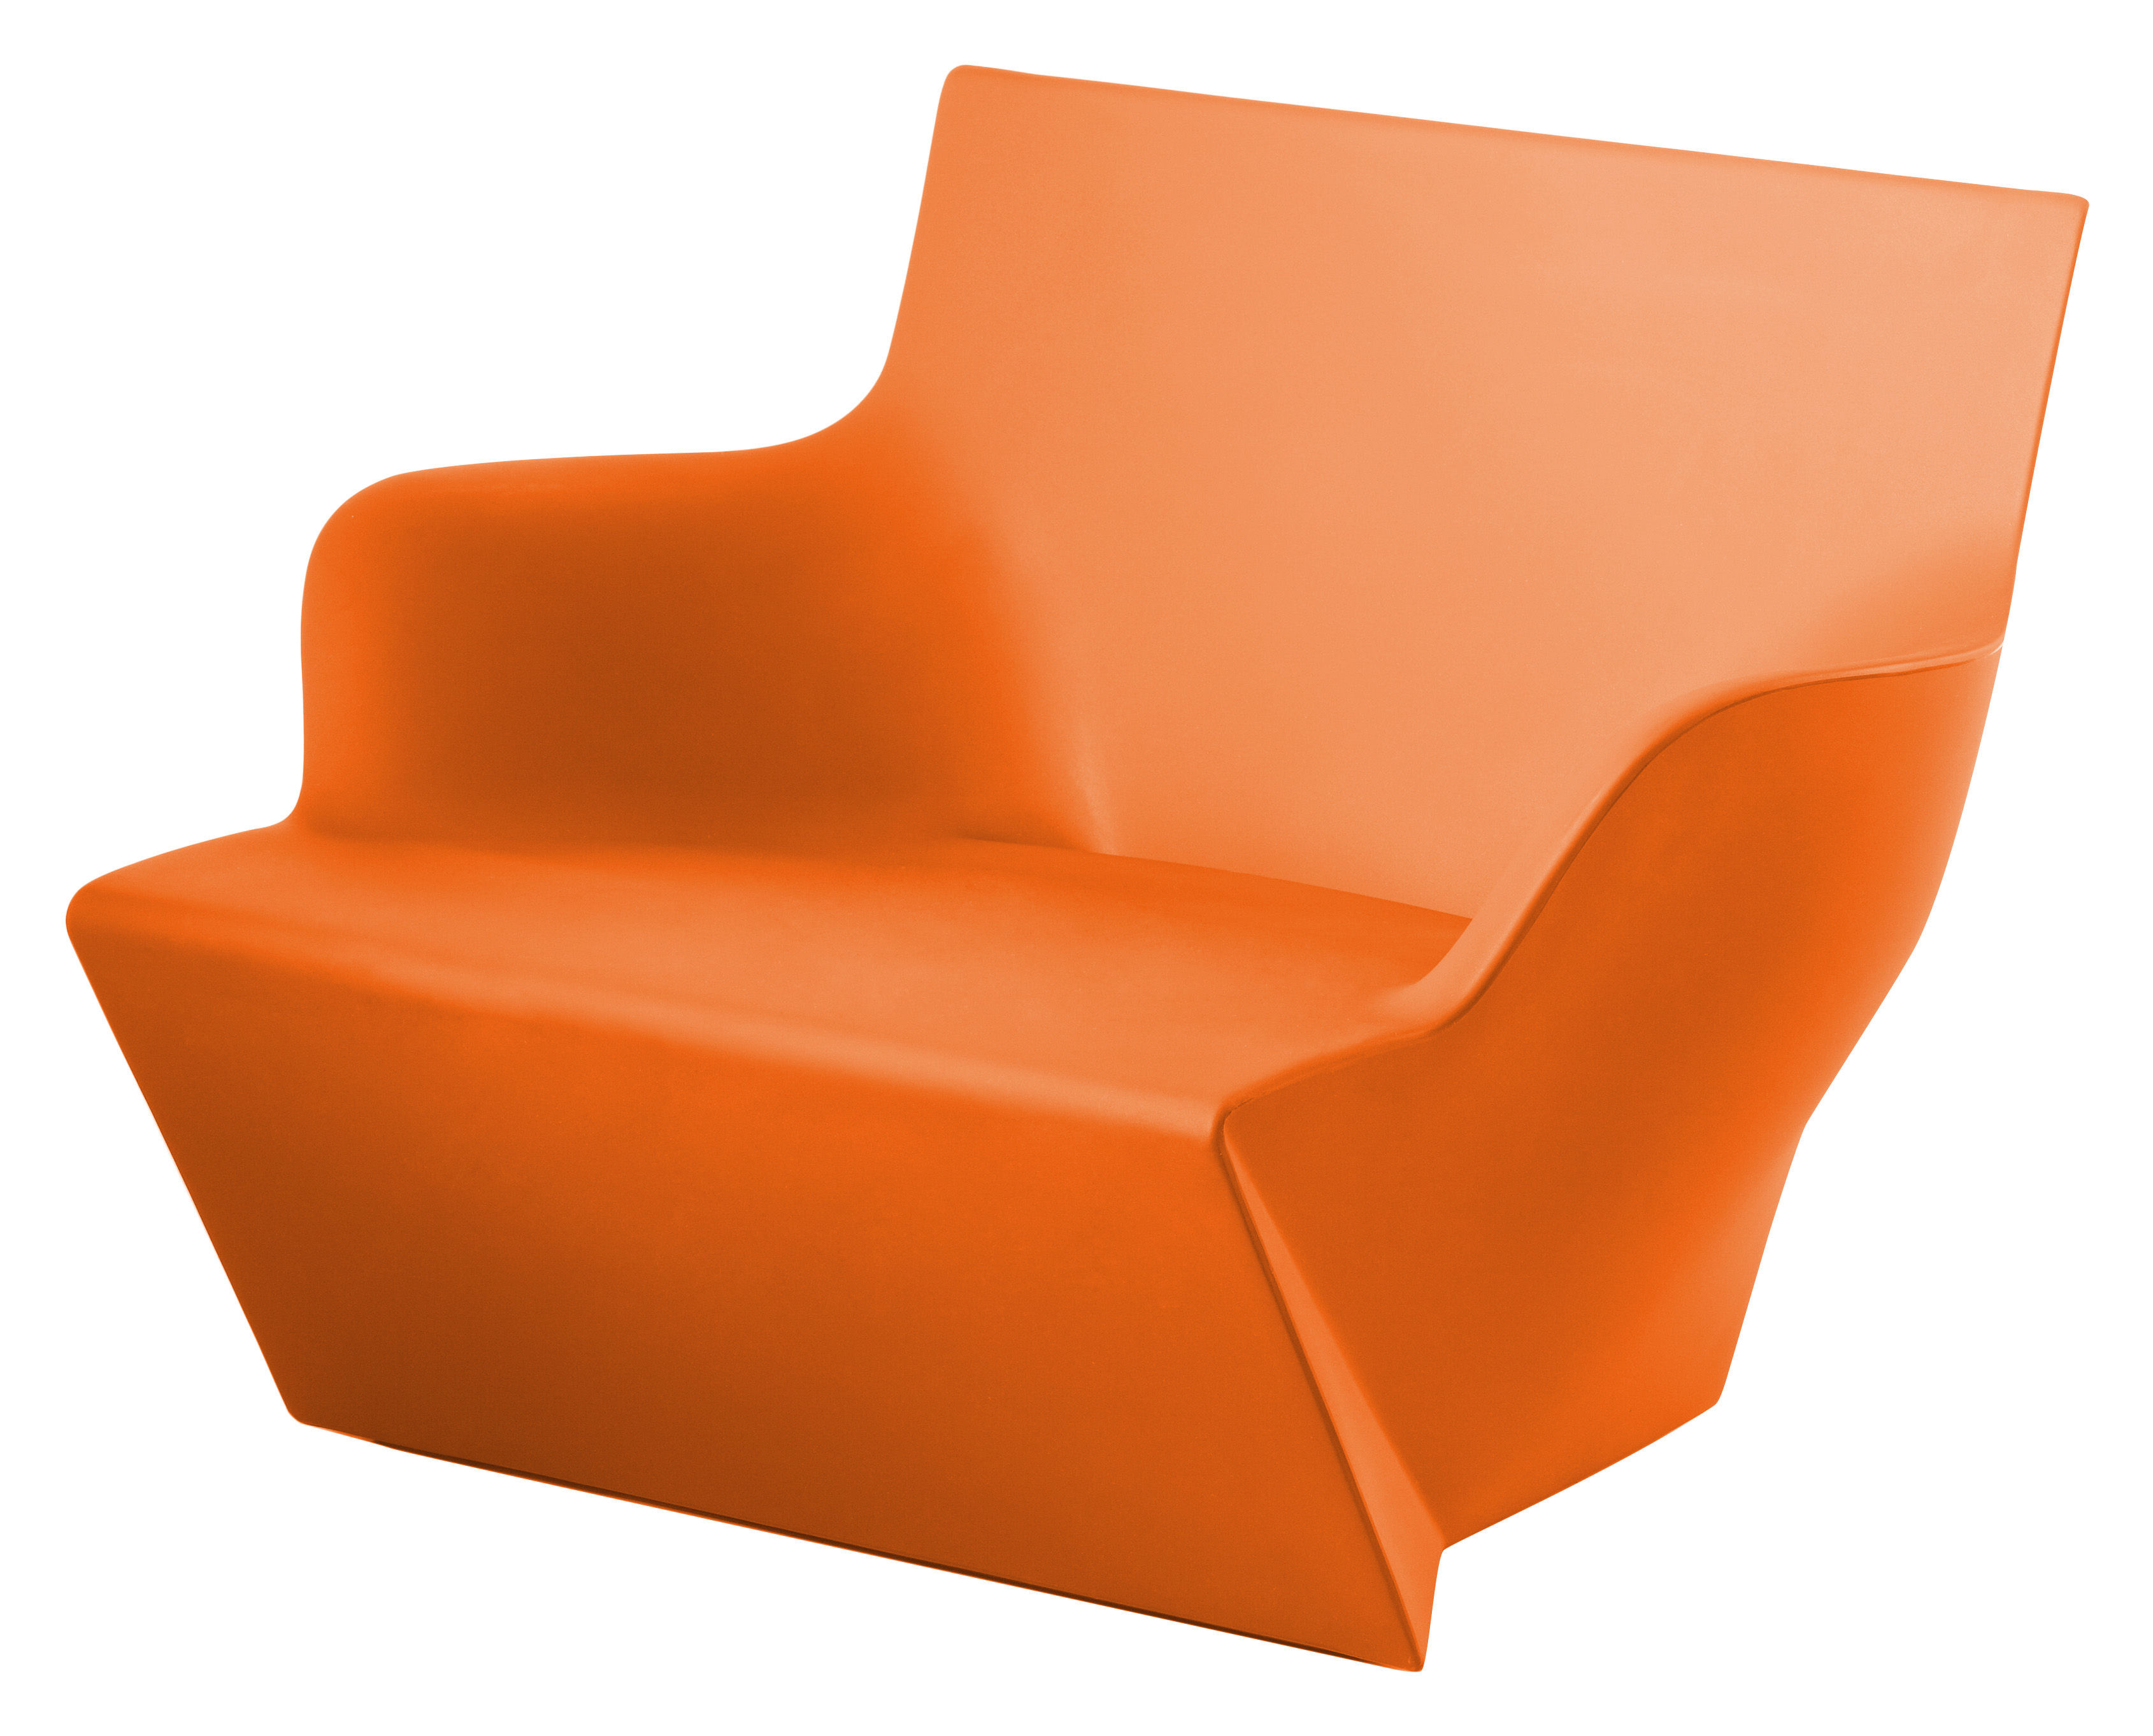 Furniture - Armchairs - Kami San Armchair by Slide - Orange - recyclable polyethylene